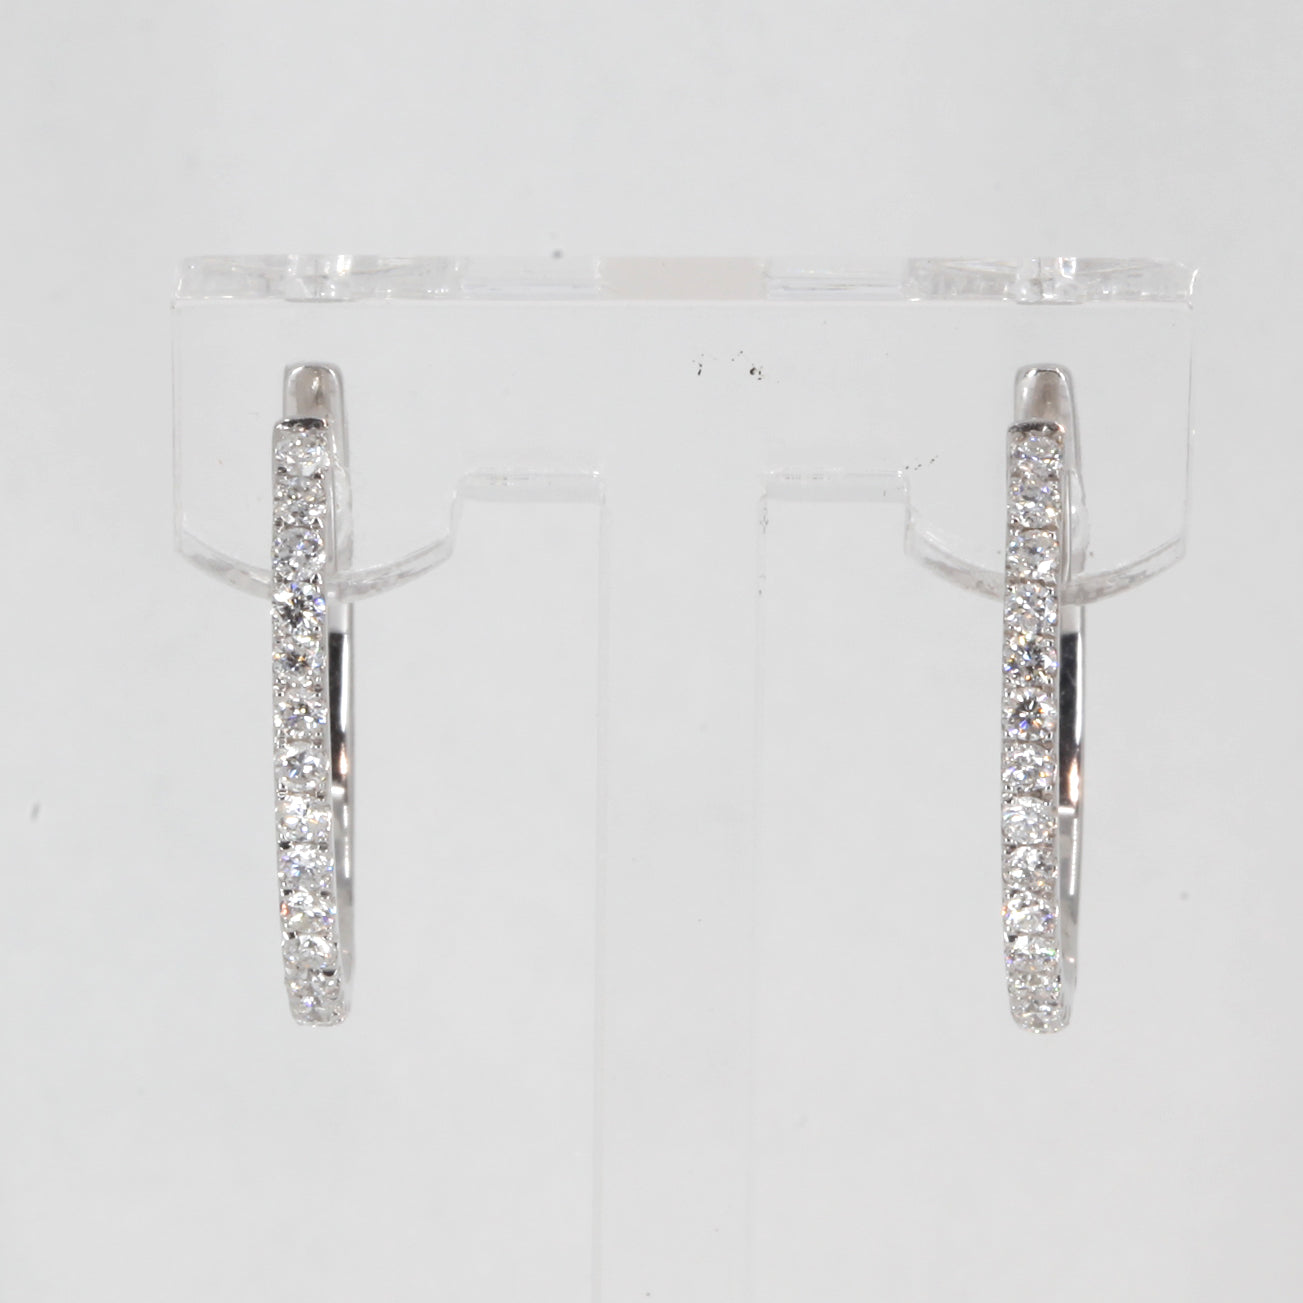 14K Solid White Gold Diamond Hoop Earrings 0.68 CT